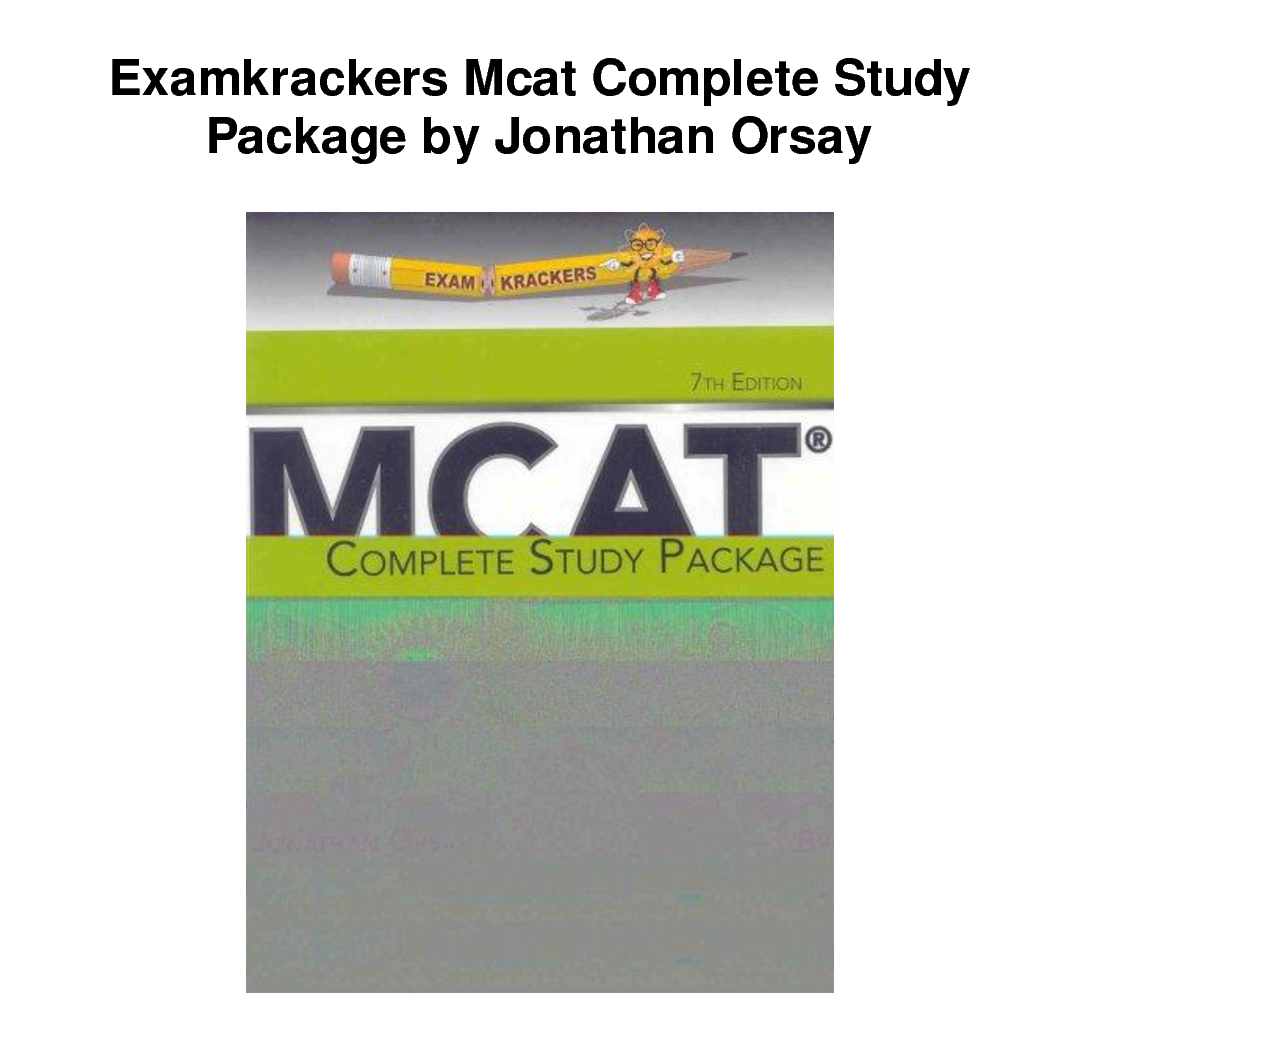 Most Recommended Books for Preparation of MCAT Test 2013